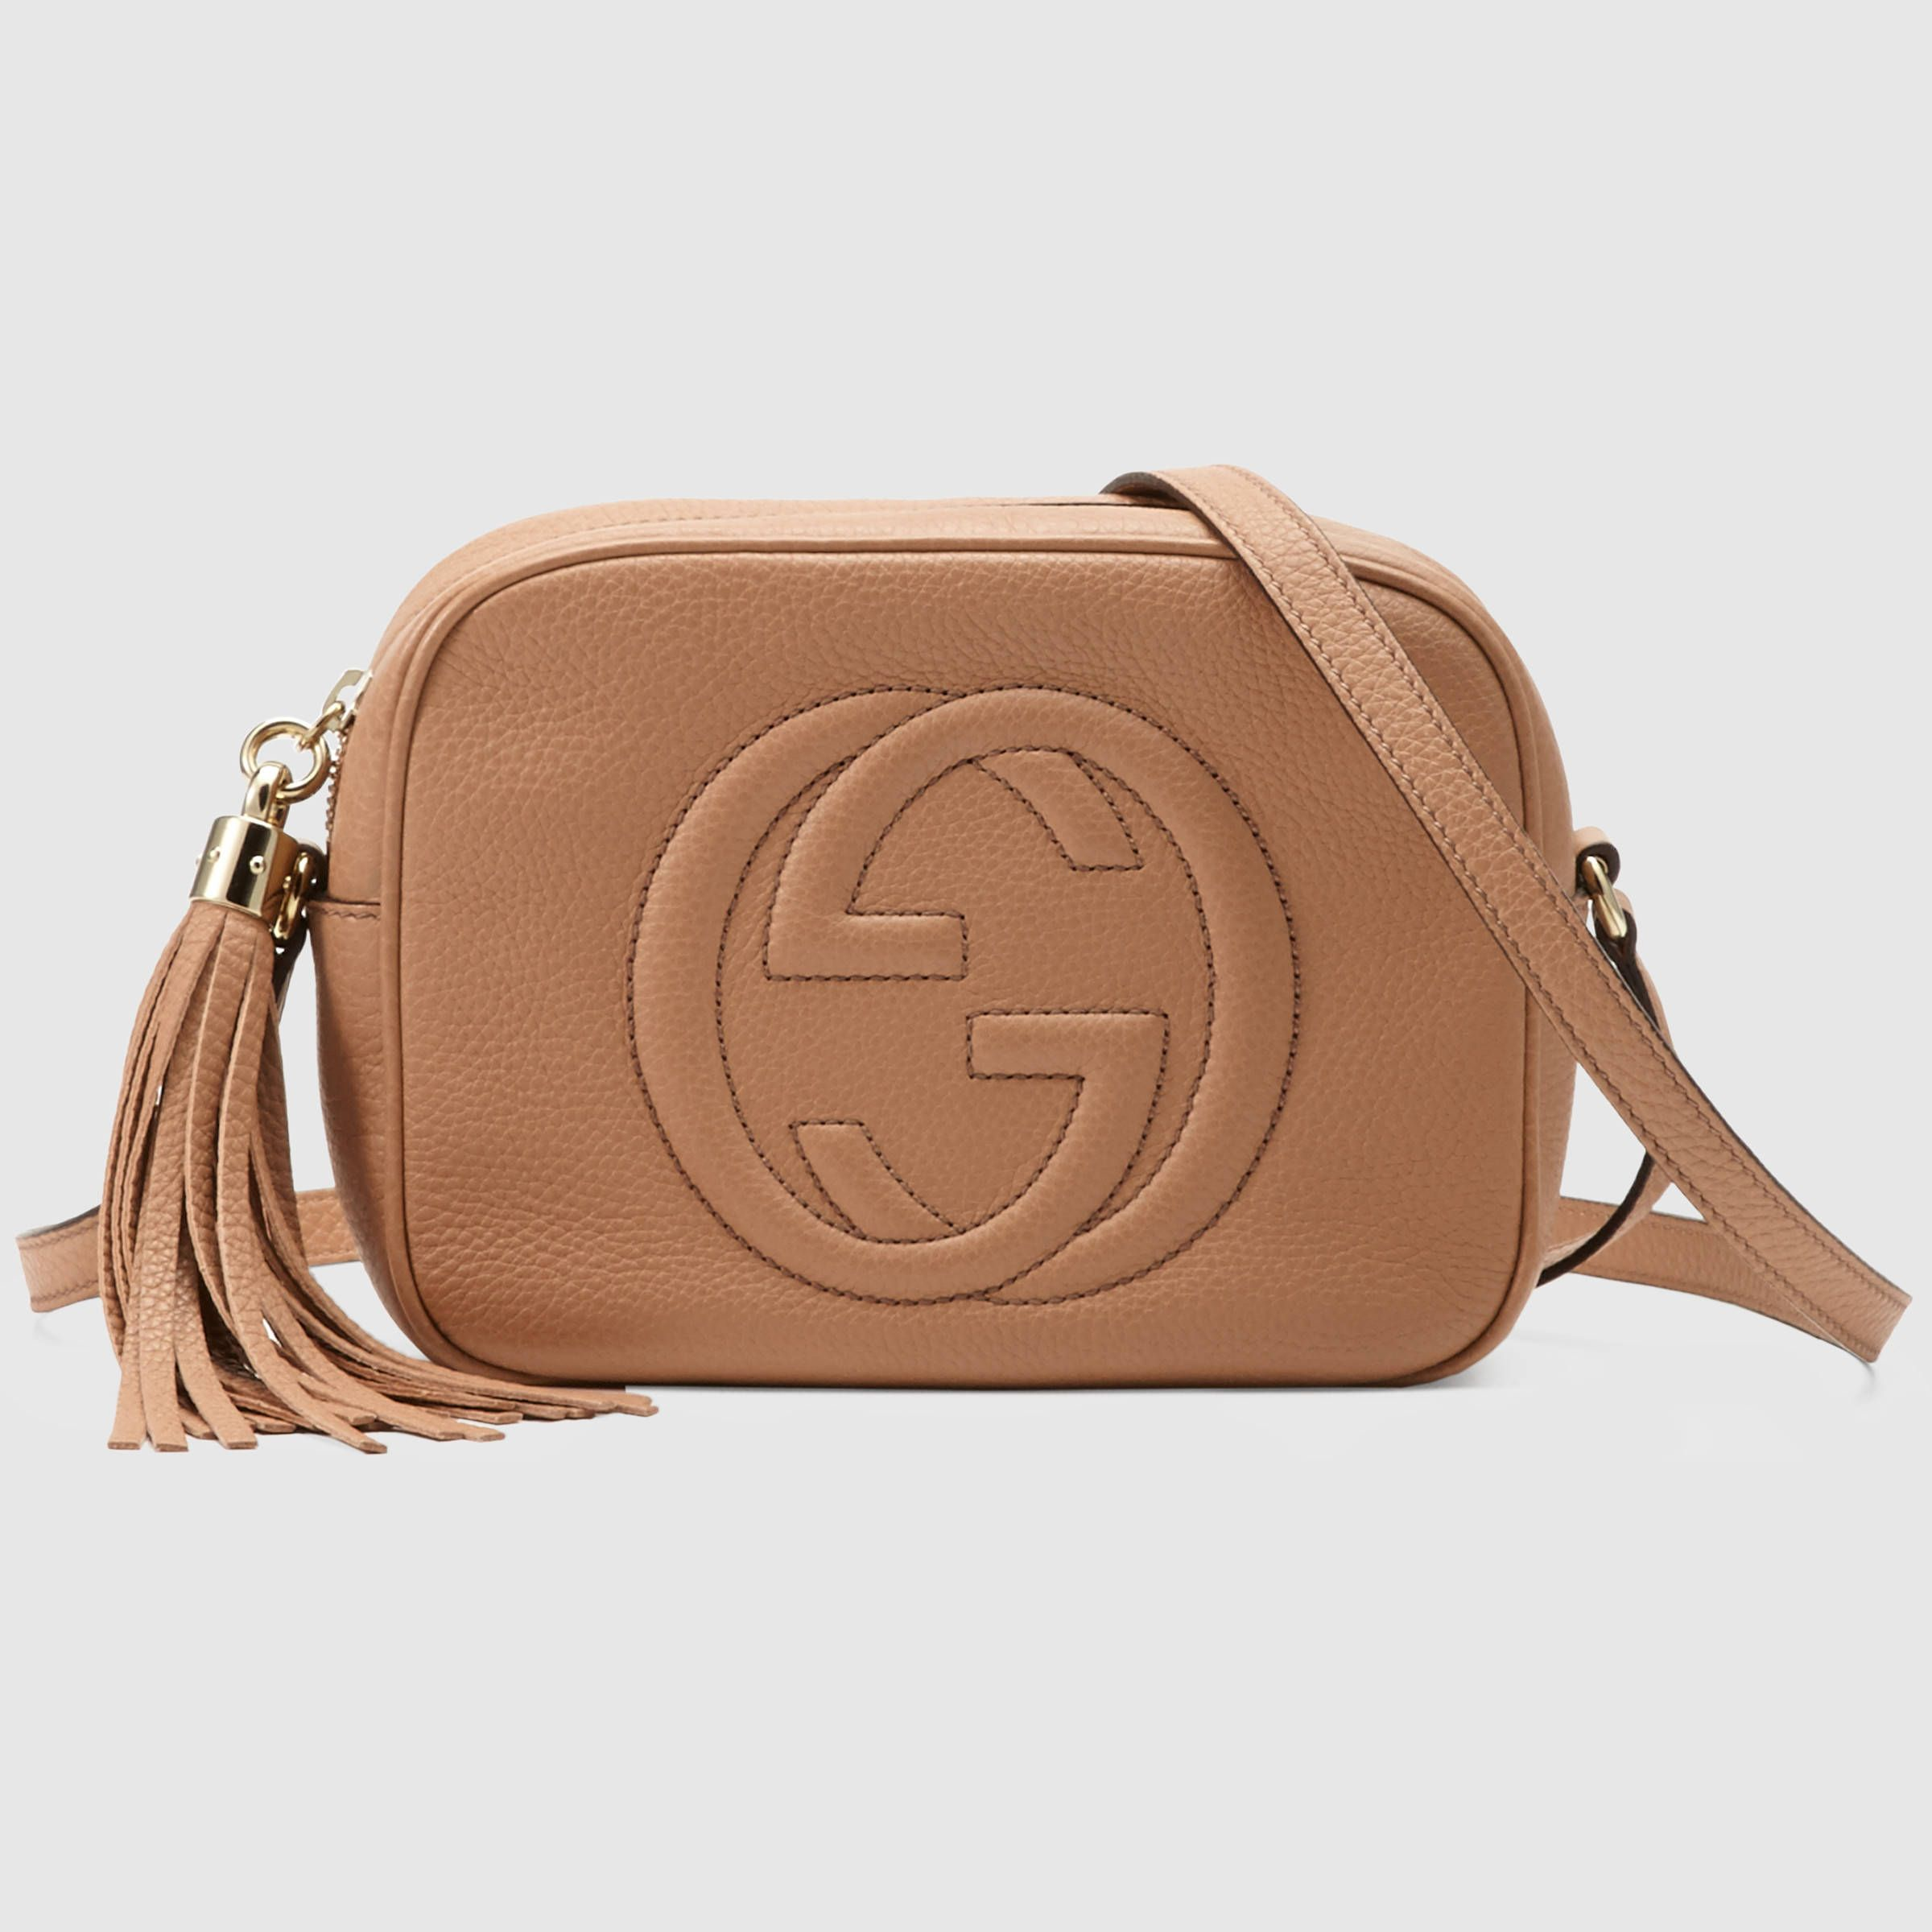 soho small leather disco bag arm candy gucci disco bag, guccigucci women soho leather disco bag rosè beige leather $980 308364a7m0g2754